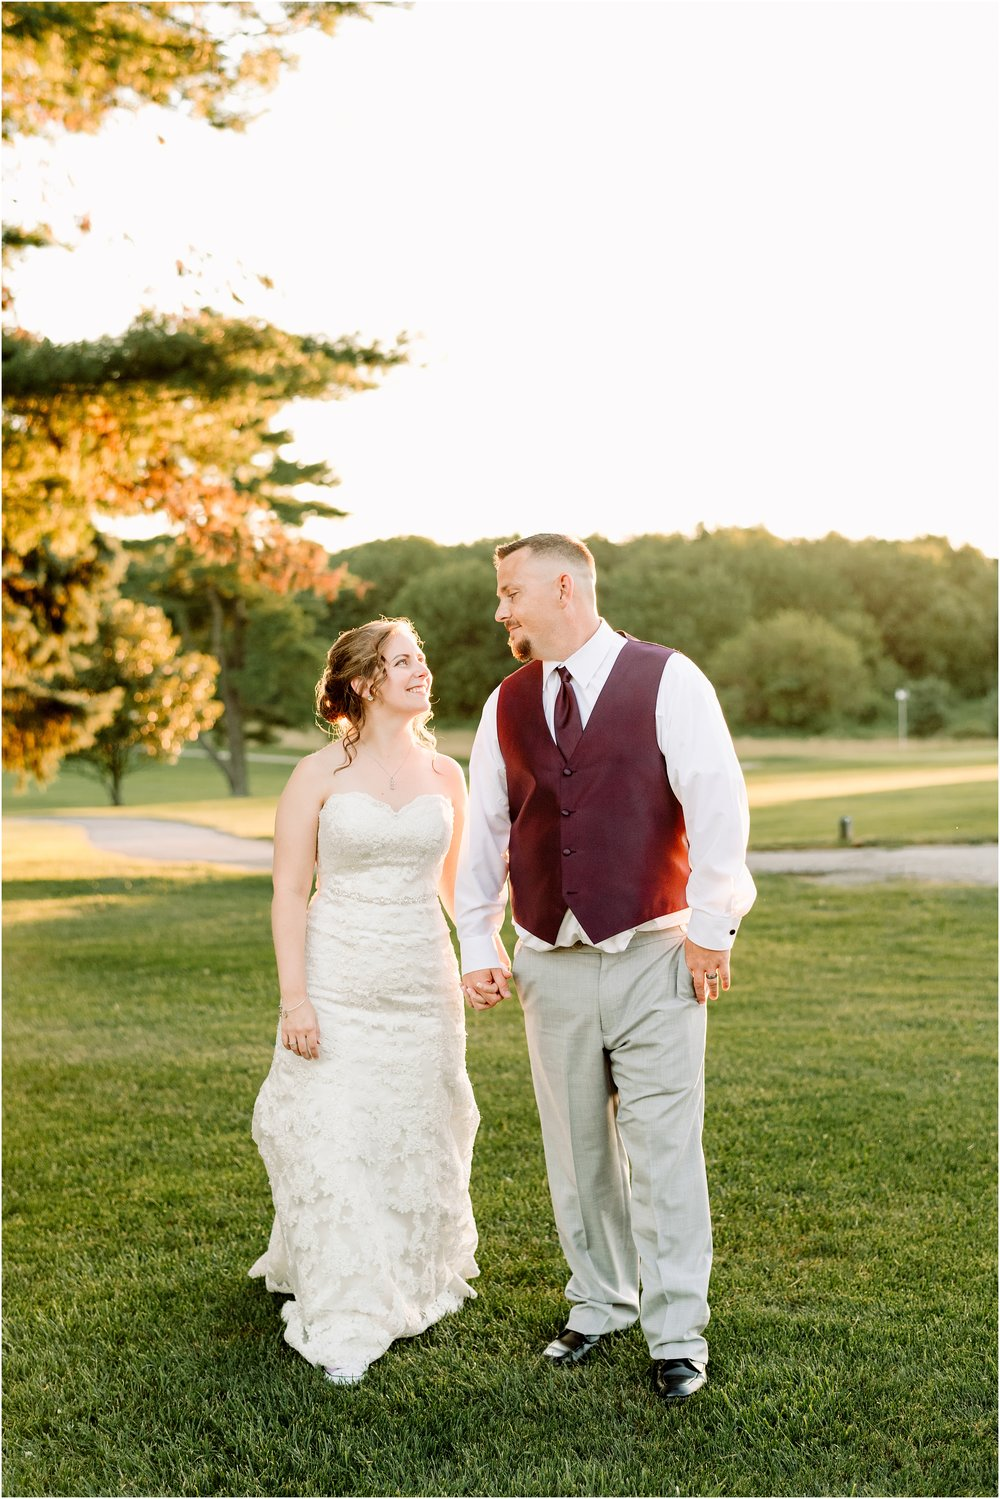 hannah leigh photography Piney Branch Golf Club Wedding Upperco MD_0488.jpg